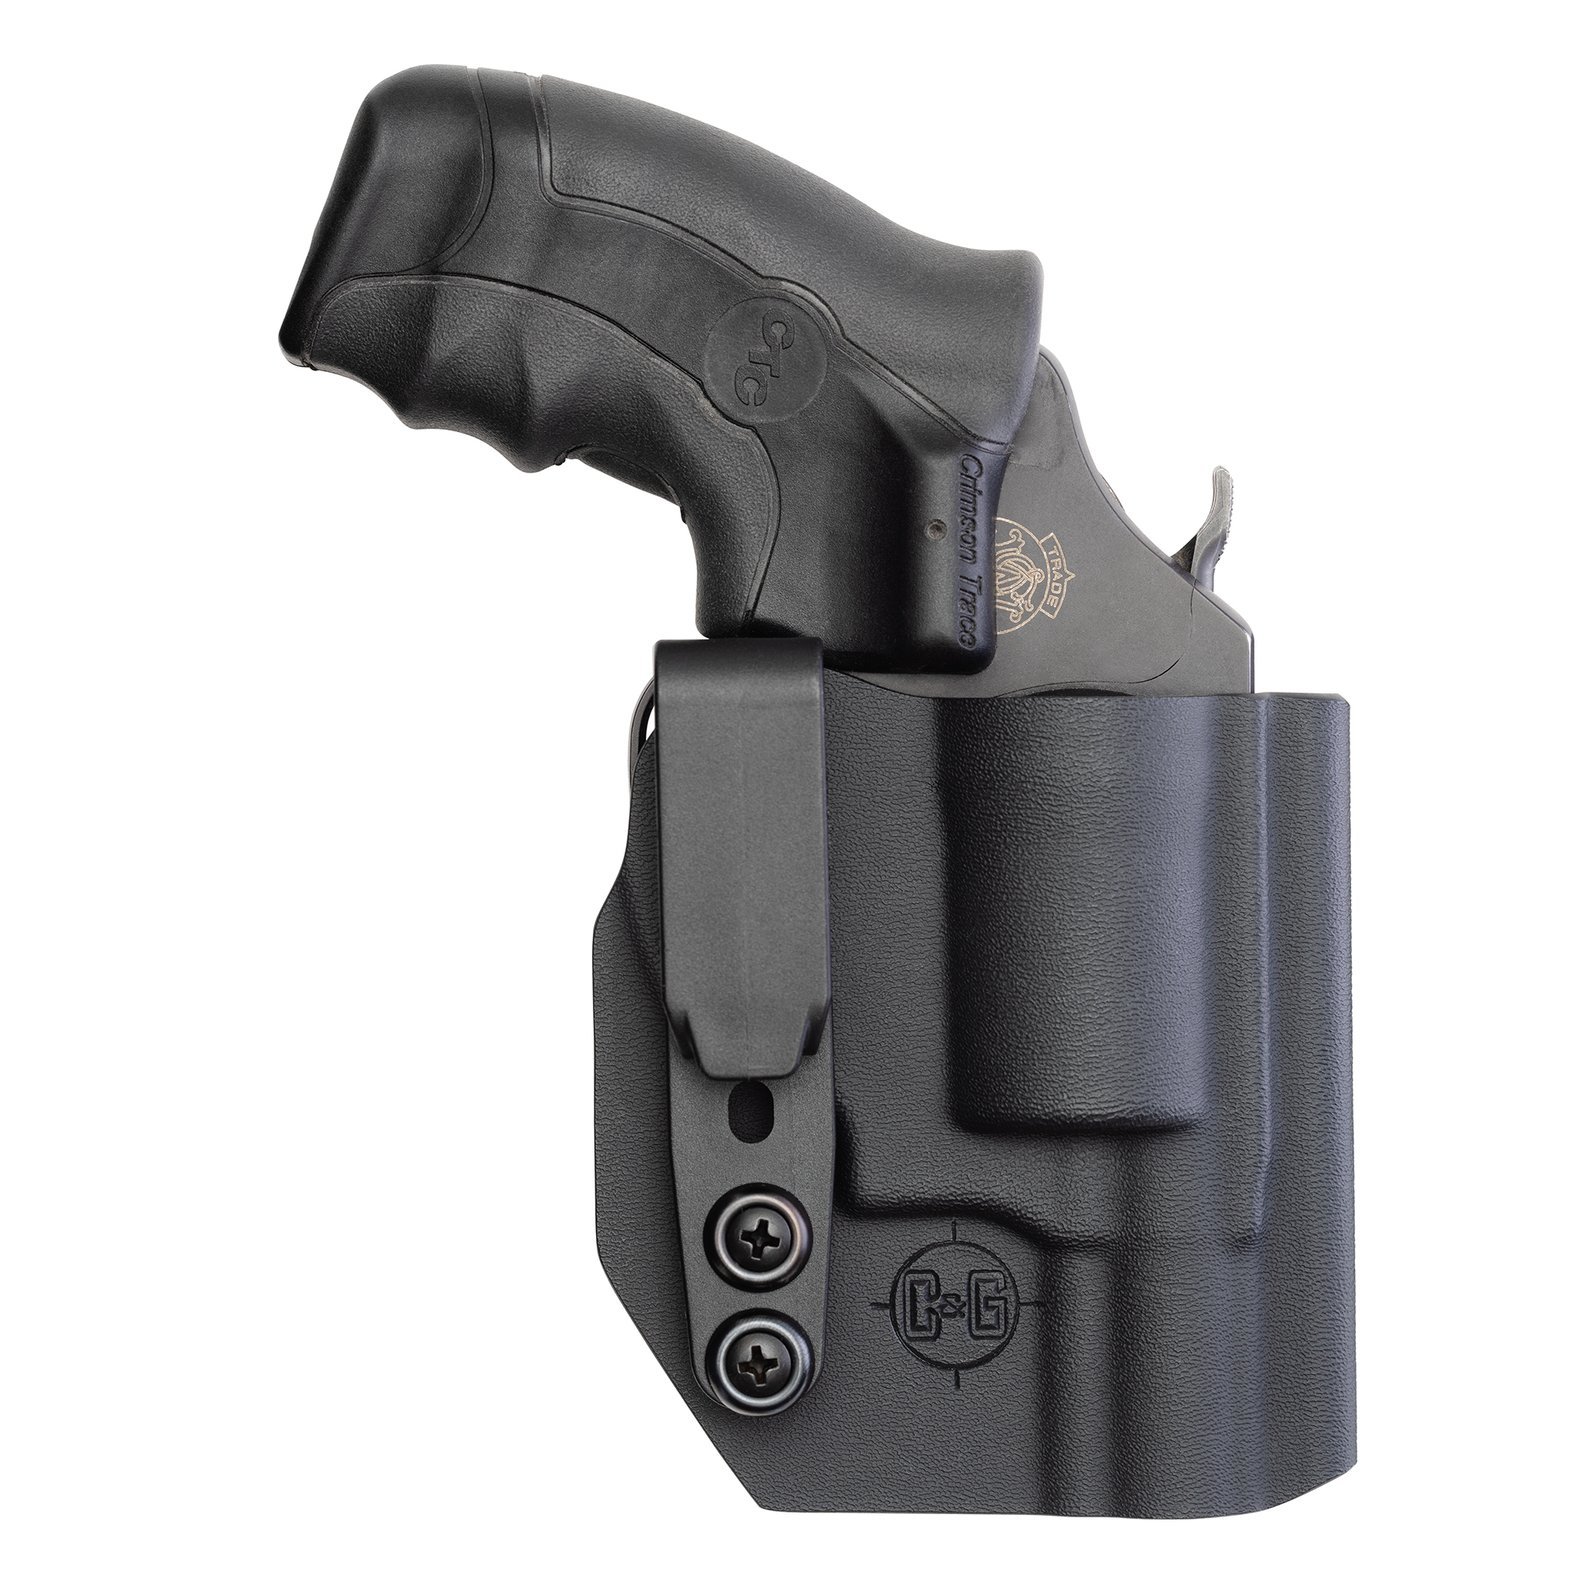 C&G Smith & Wesson 442-642-340 (J-Frame) IWB Covert Kydex Holster -  Quickship